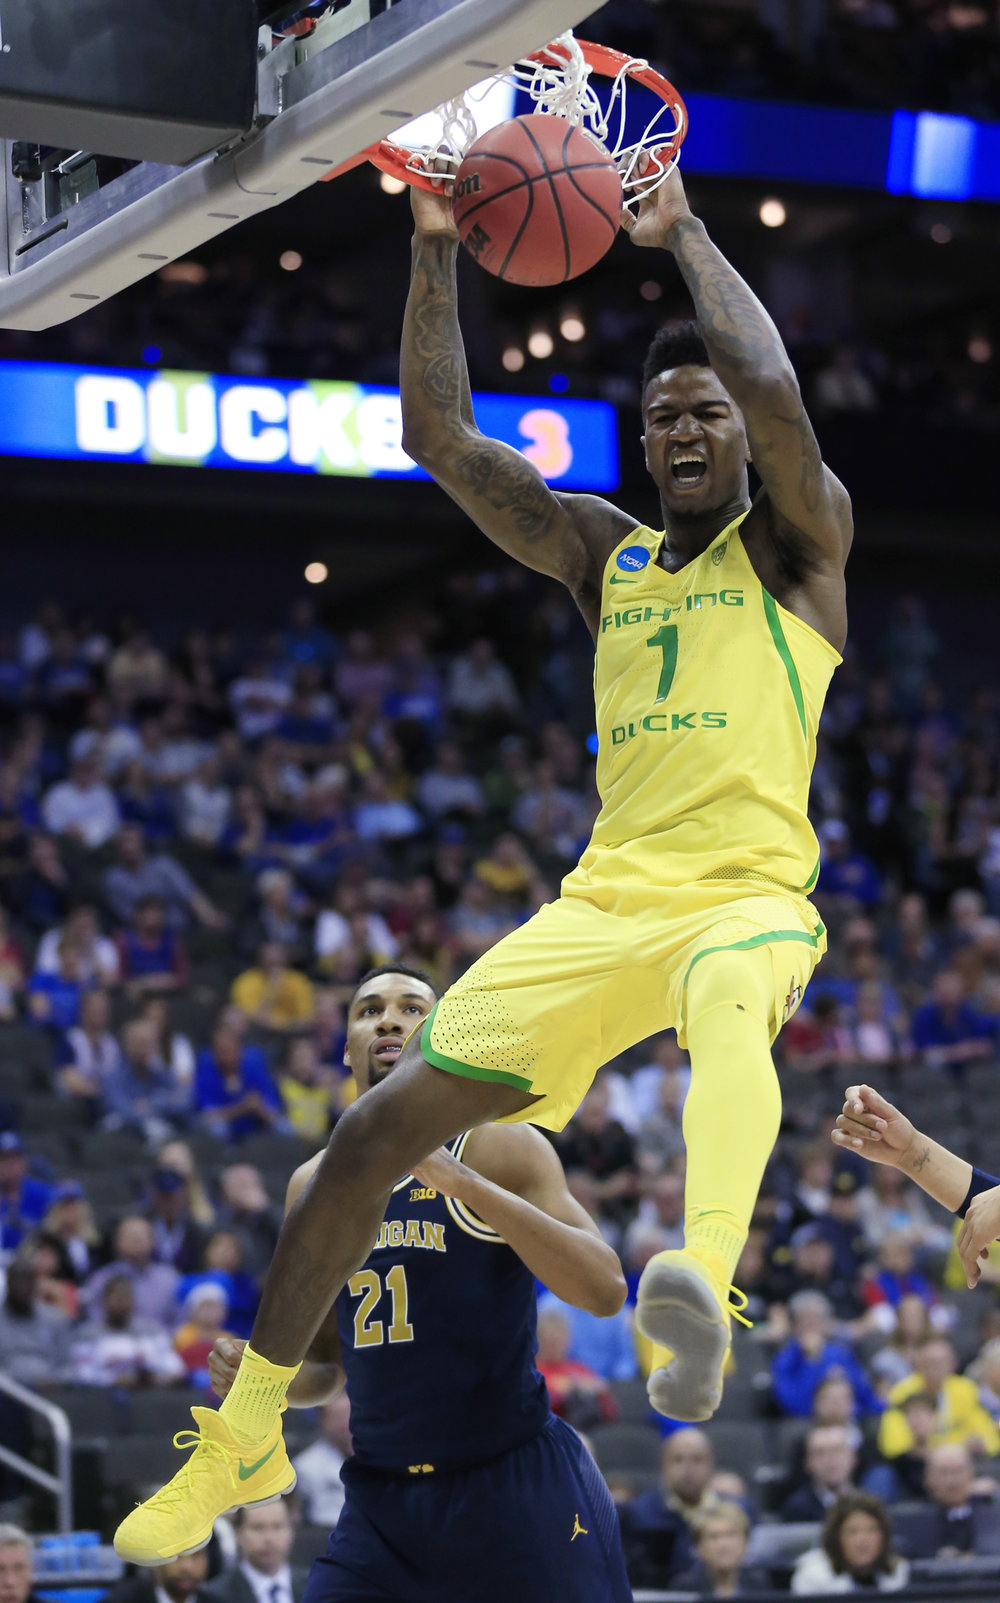 In this Thursday, March 23, 2017, file photo, Oregon forward Jordan Bell (1) dunks over Michigan guard Zak Irvin (21) during the first half of a regional semifinal of the NCAA men's college basketball tournament in Kansas City, MO. (Orlin Wagner, File/AP)